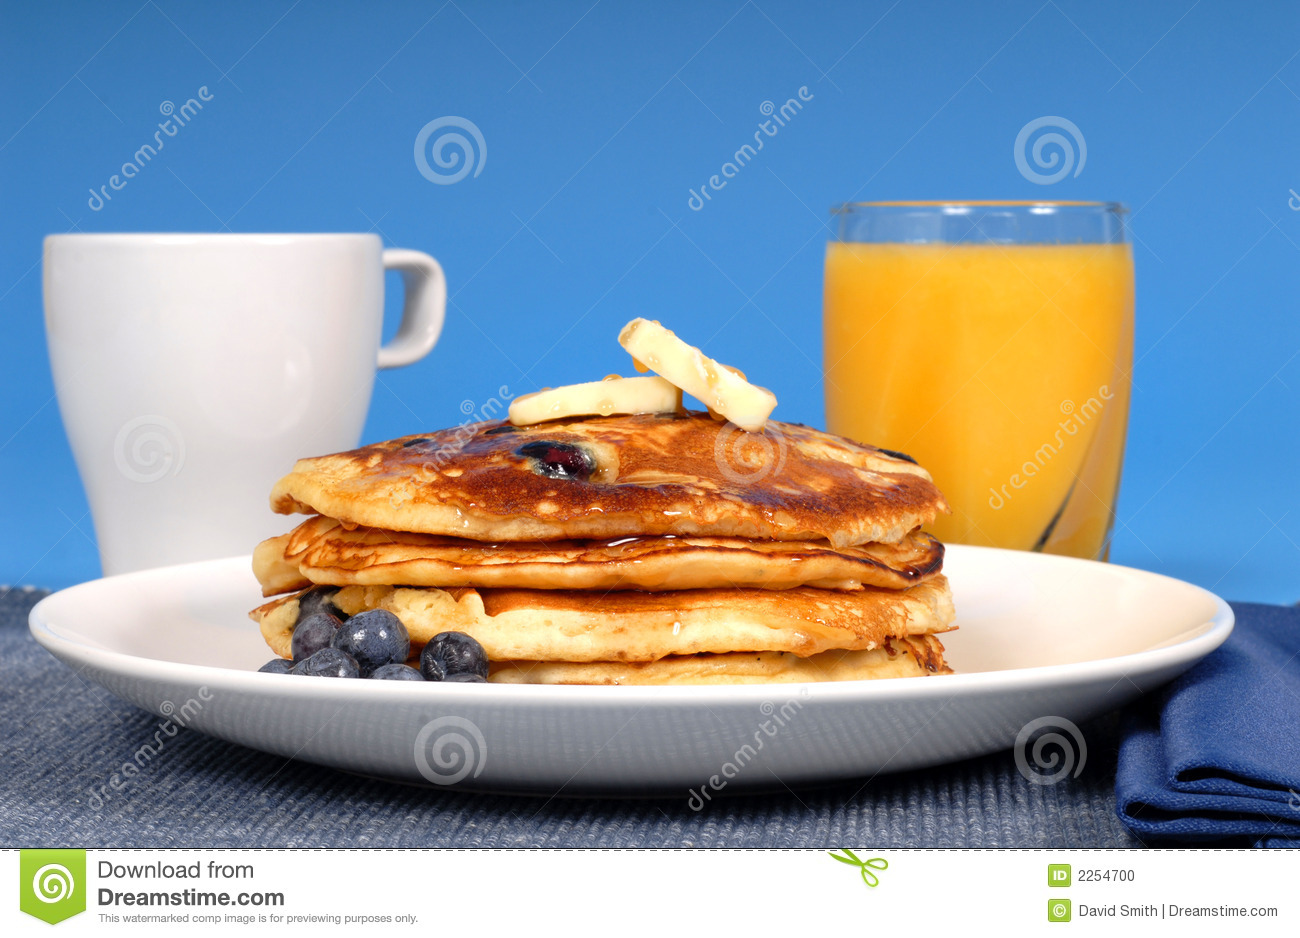 Blueberry pancakes with juice